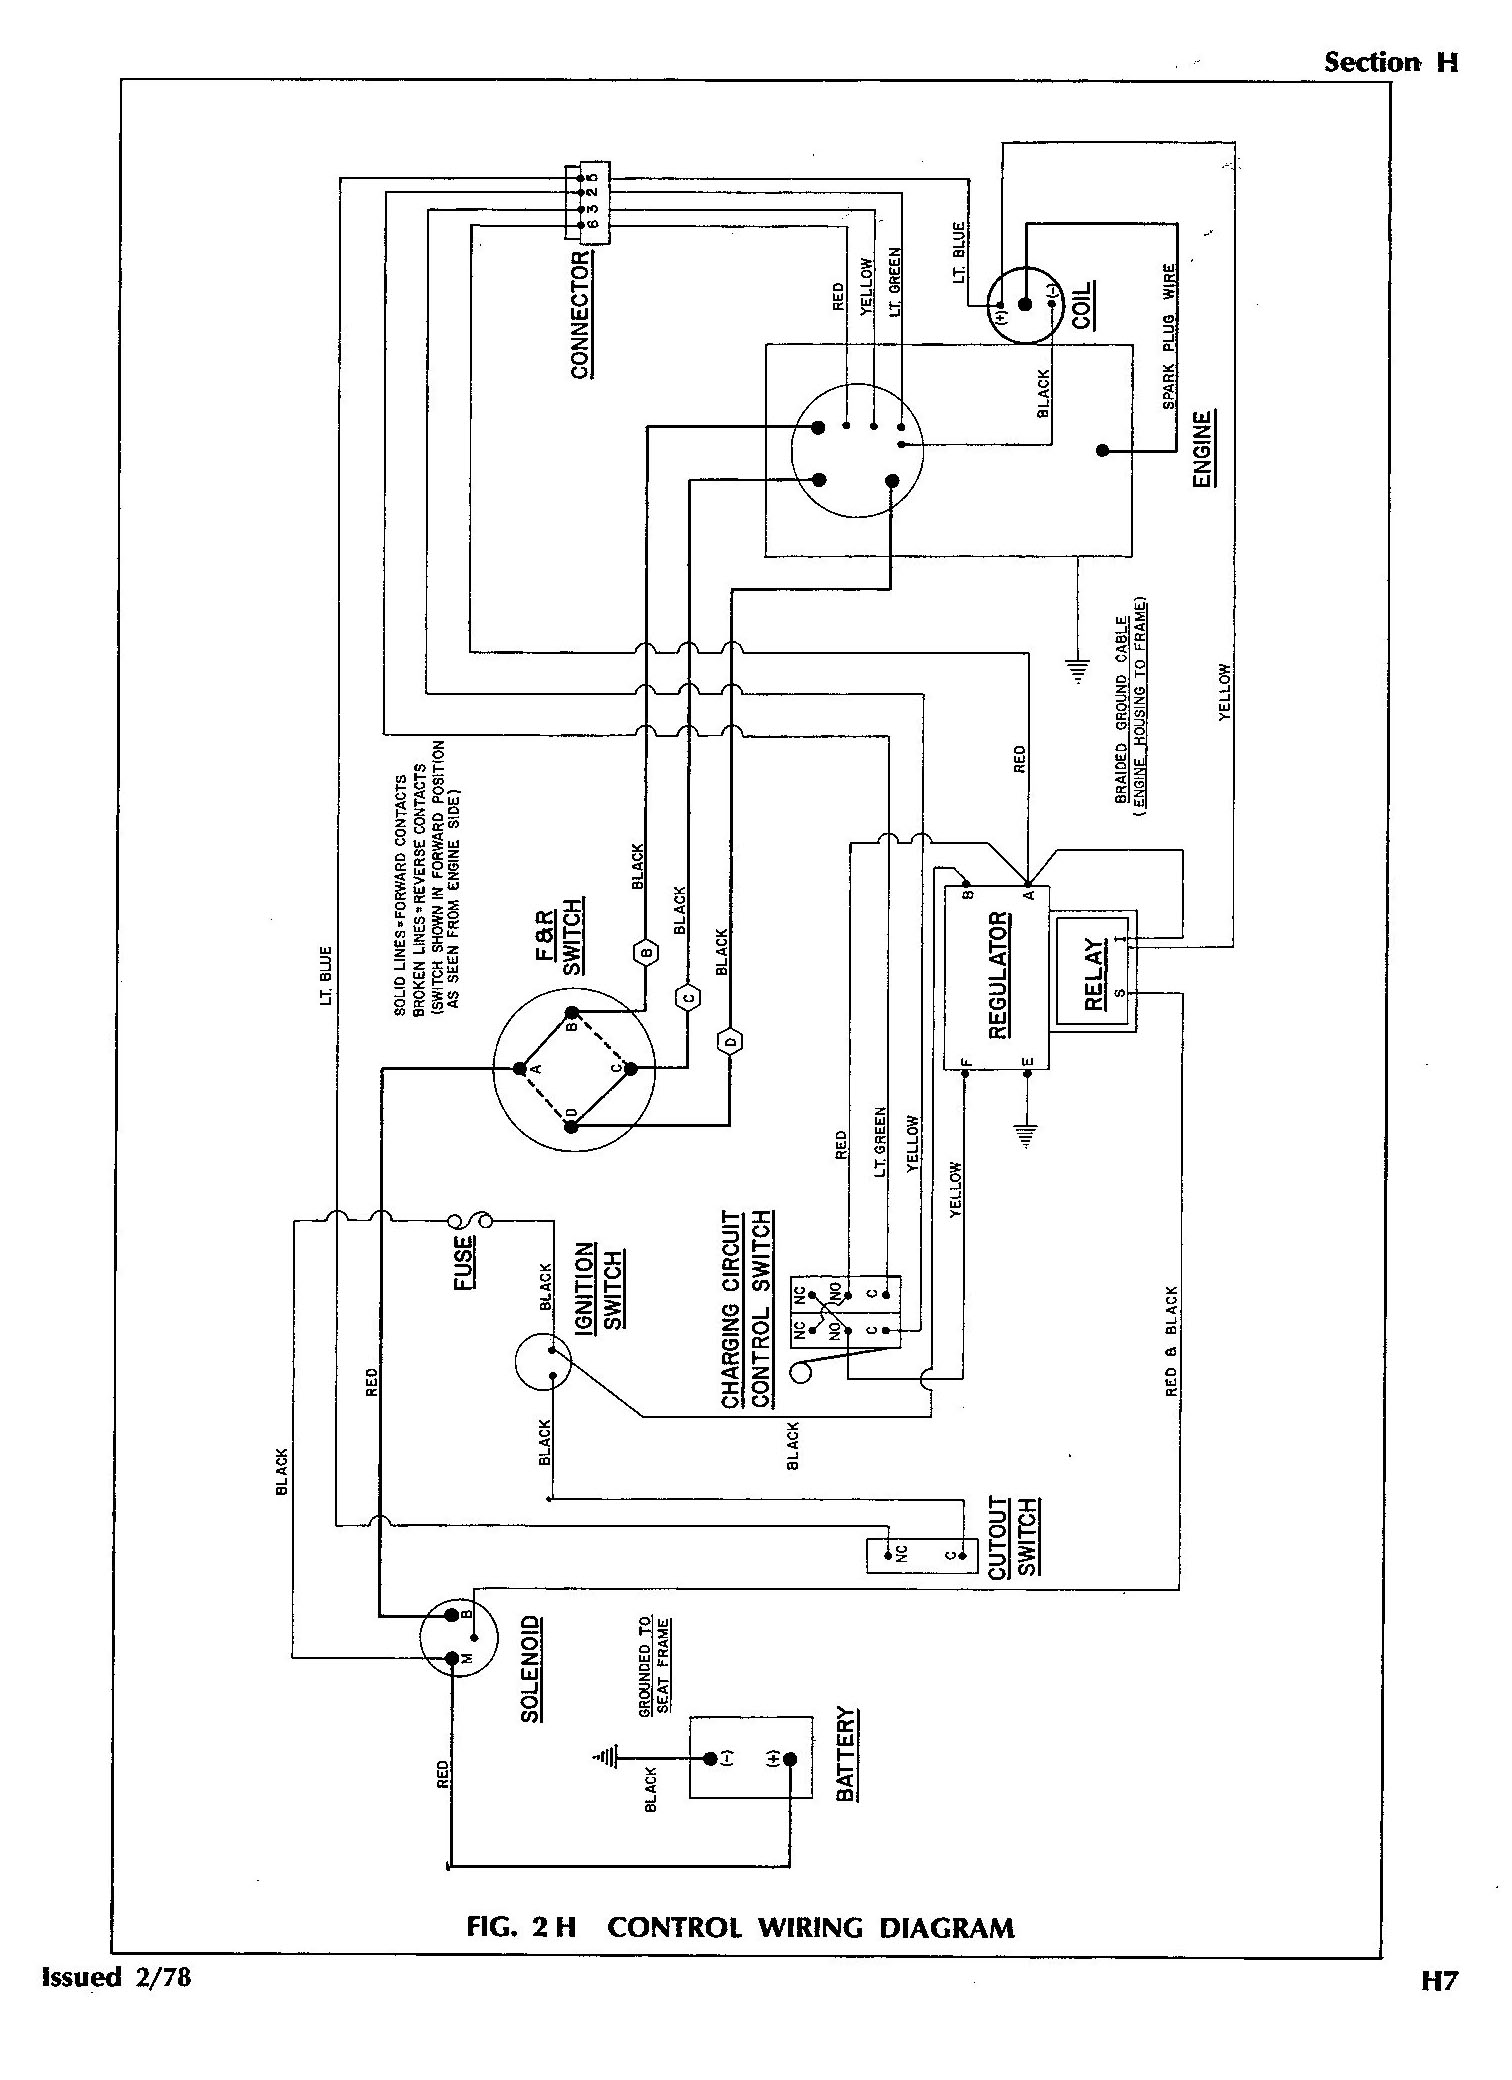 DIAGRAM] F103 Ez Go Gas Wiring Harness Diagram FULL Version HD Quality Harness  Diagram - MOBILEDIAGRAM.PHOTOSMONTAGES.FRPhotosmontages